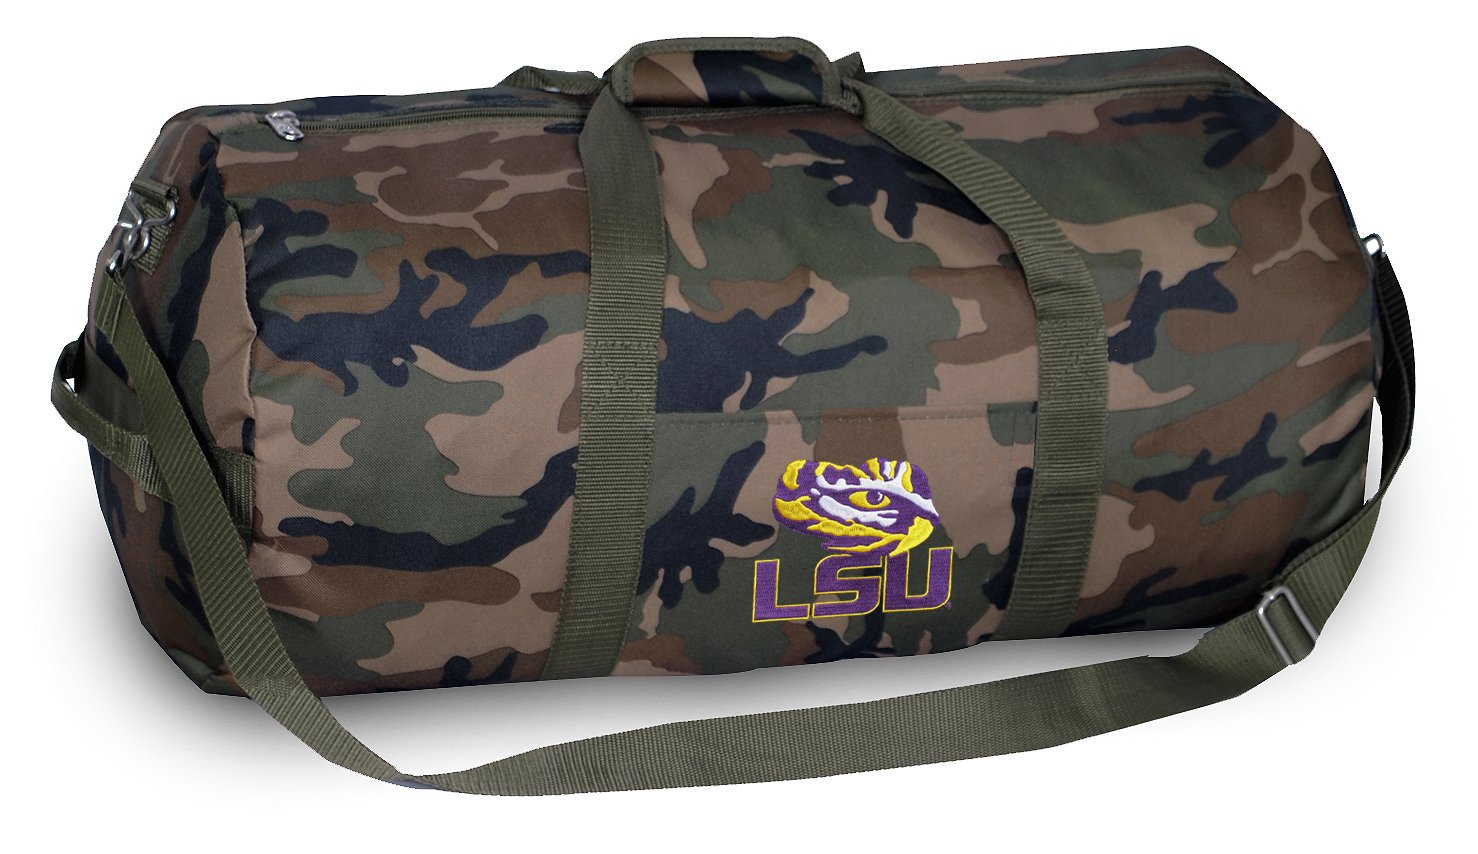 LSU CAMO Duffle Bag LSU Tigers Duffel Suitcase Luggage